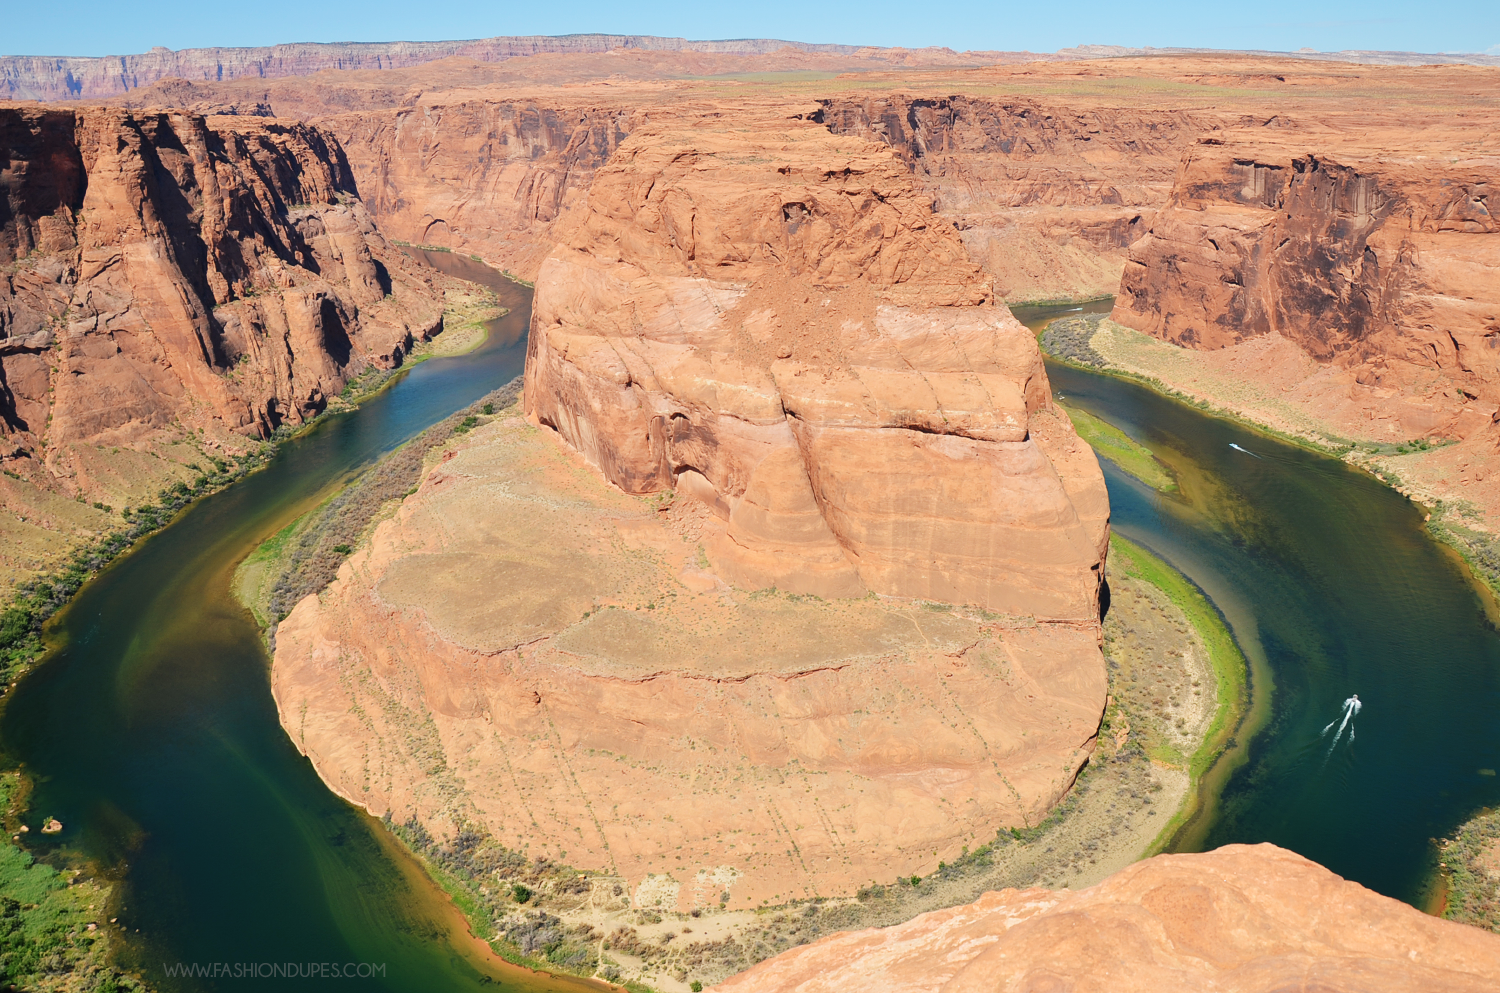 002_horseshoe bend landscape usa on the road west coast fashion dupes road tour travel guide